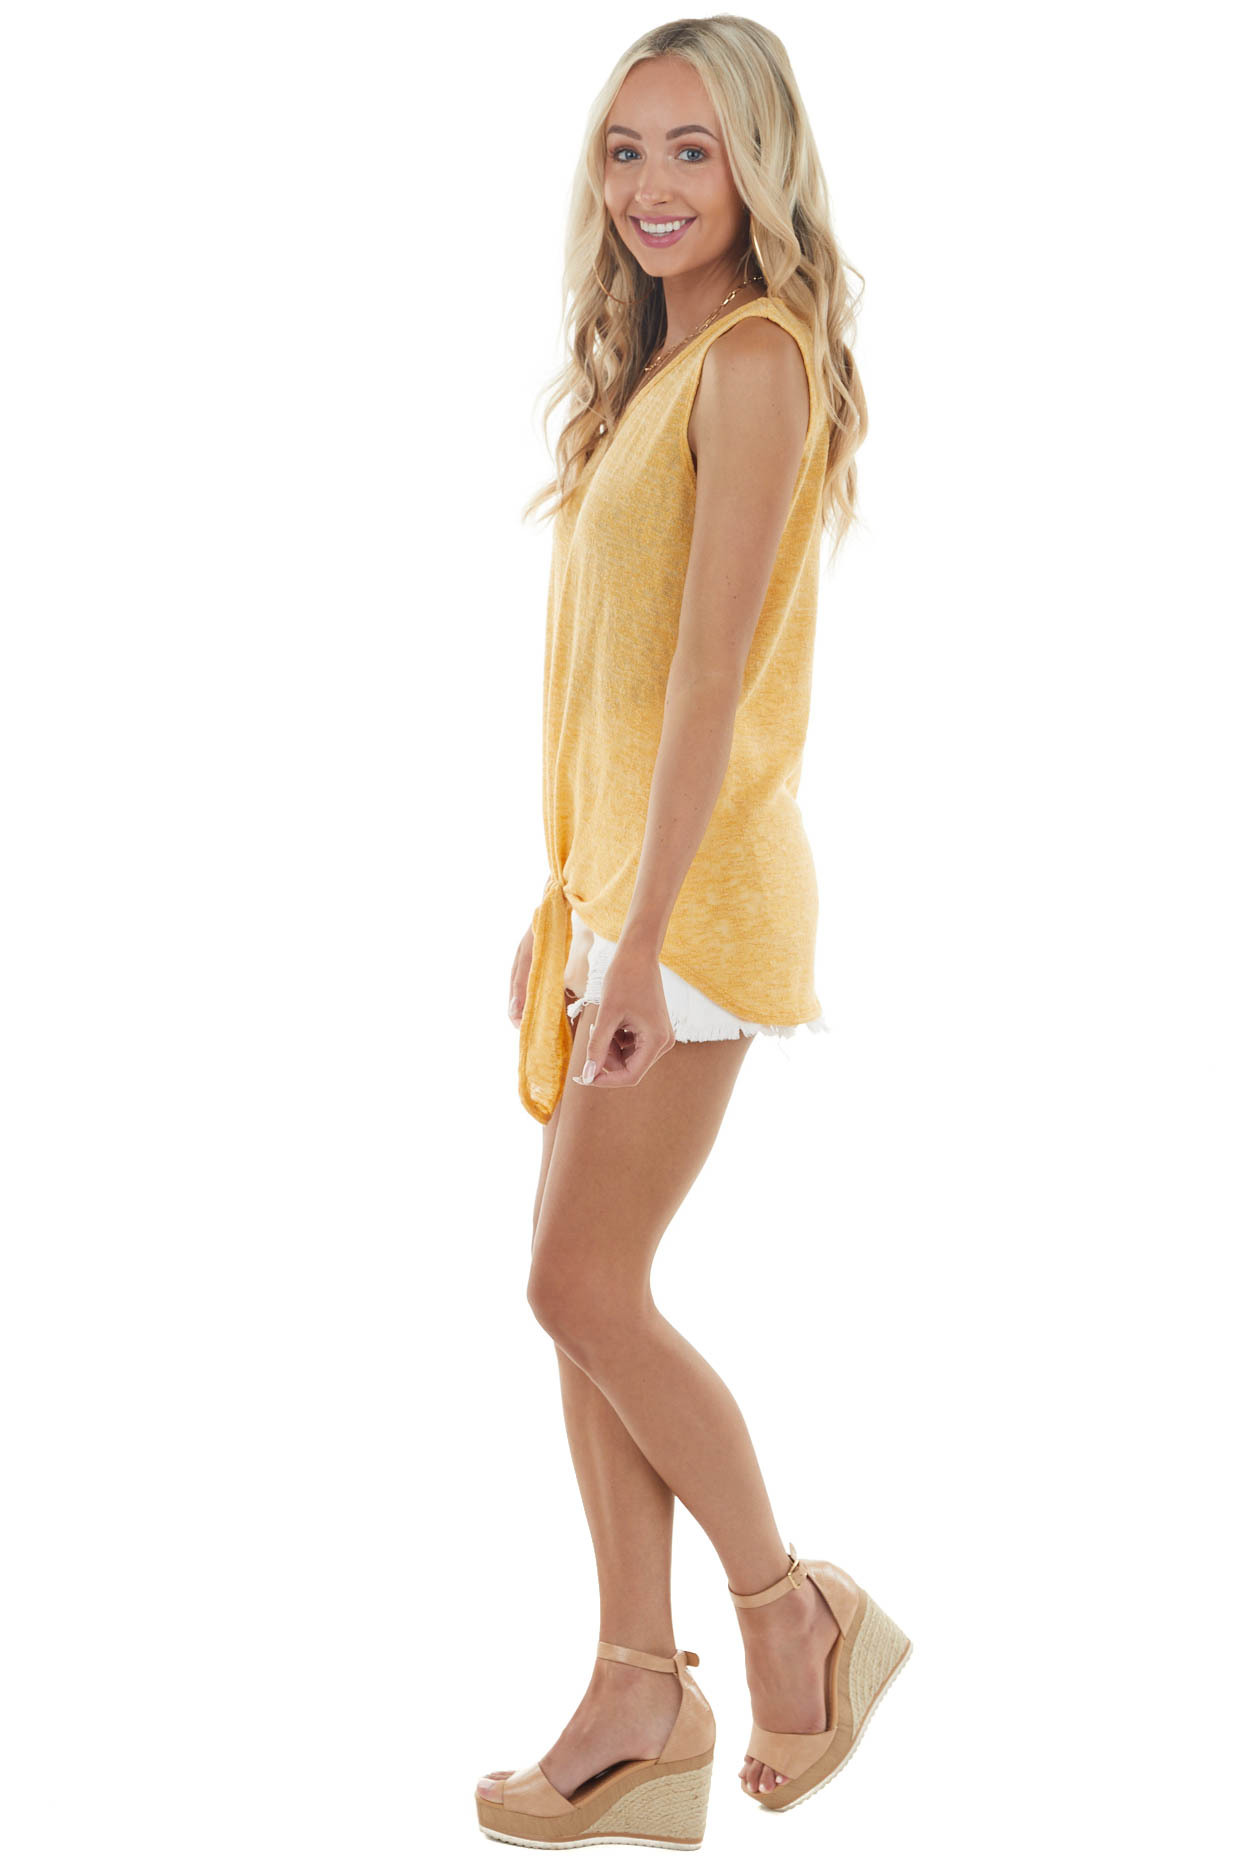 Heathered Amber Sleeveless Knit Top with Front Tie Detail